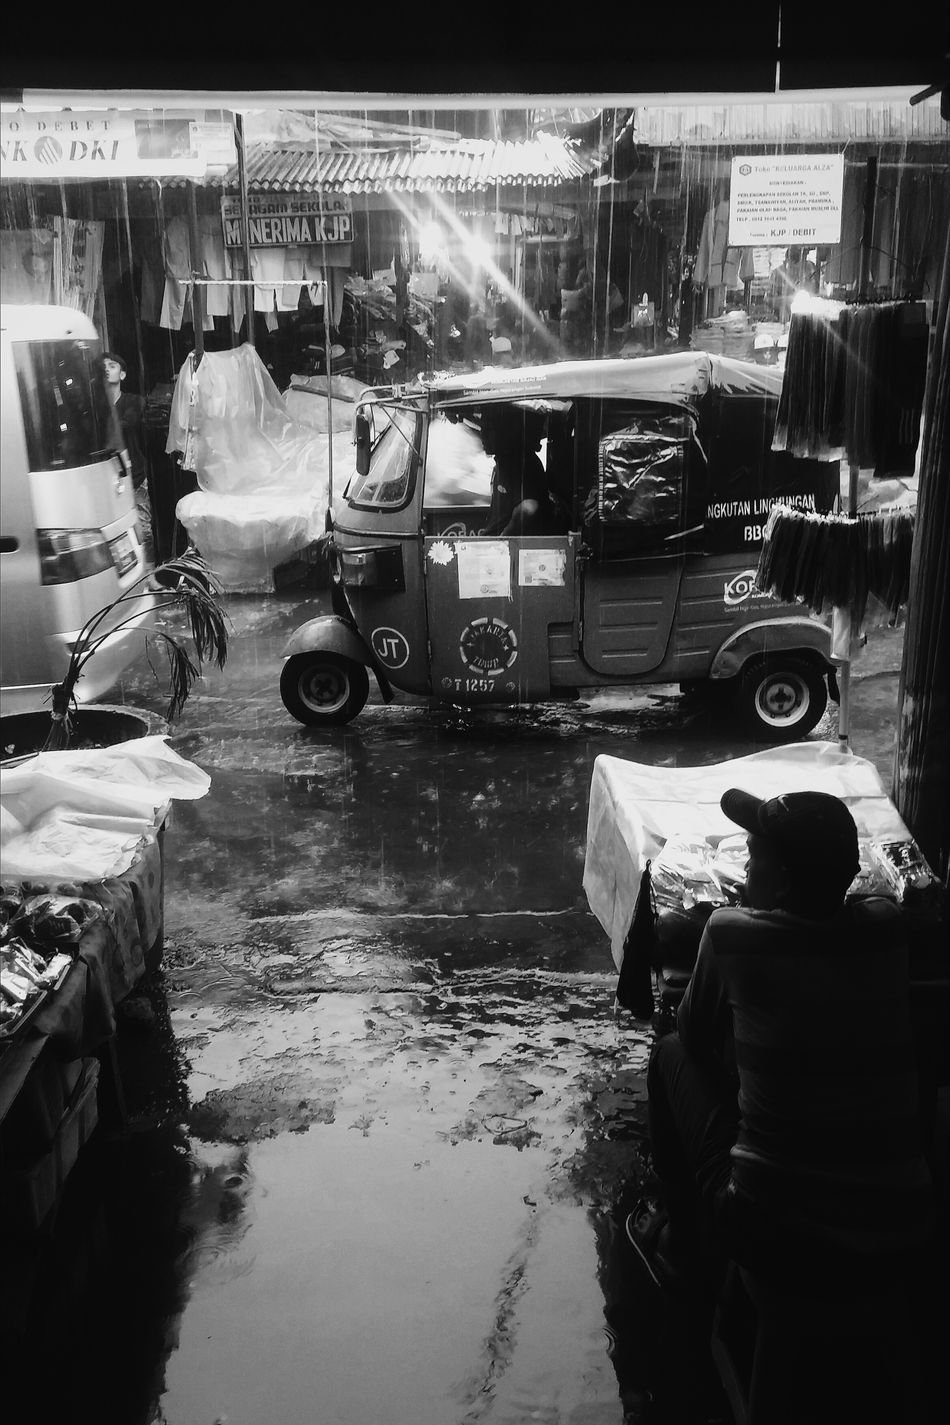 Transportation Wet Street Land Vehicle Mode Of Transport Rain Reflection Road Real People Rainy Monochrome Black And White Snap a Stranger Embrace Urban Life Welcome To Black